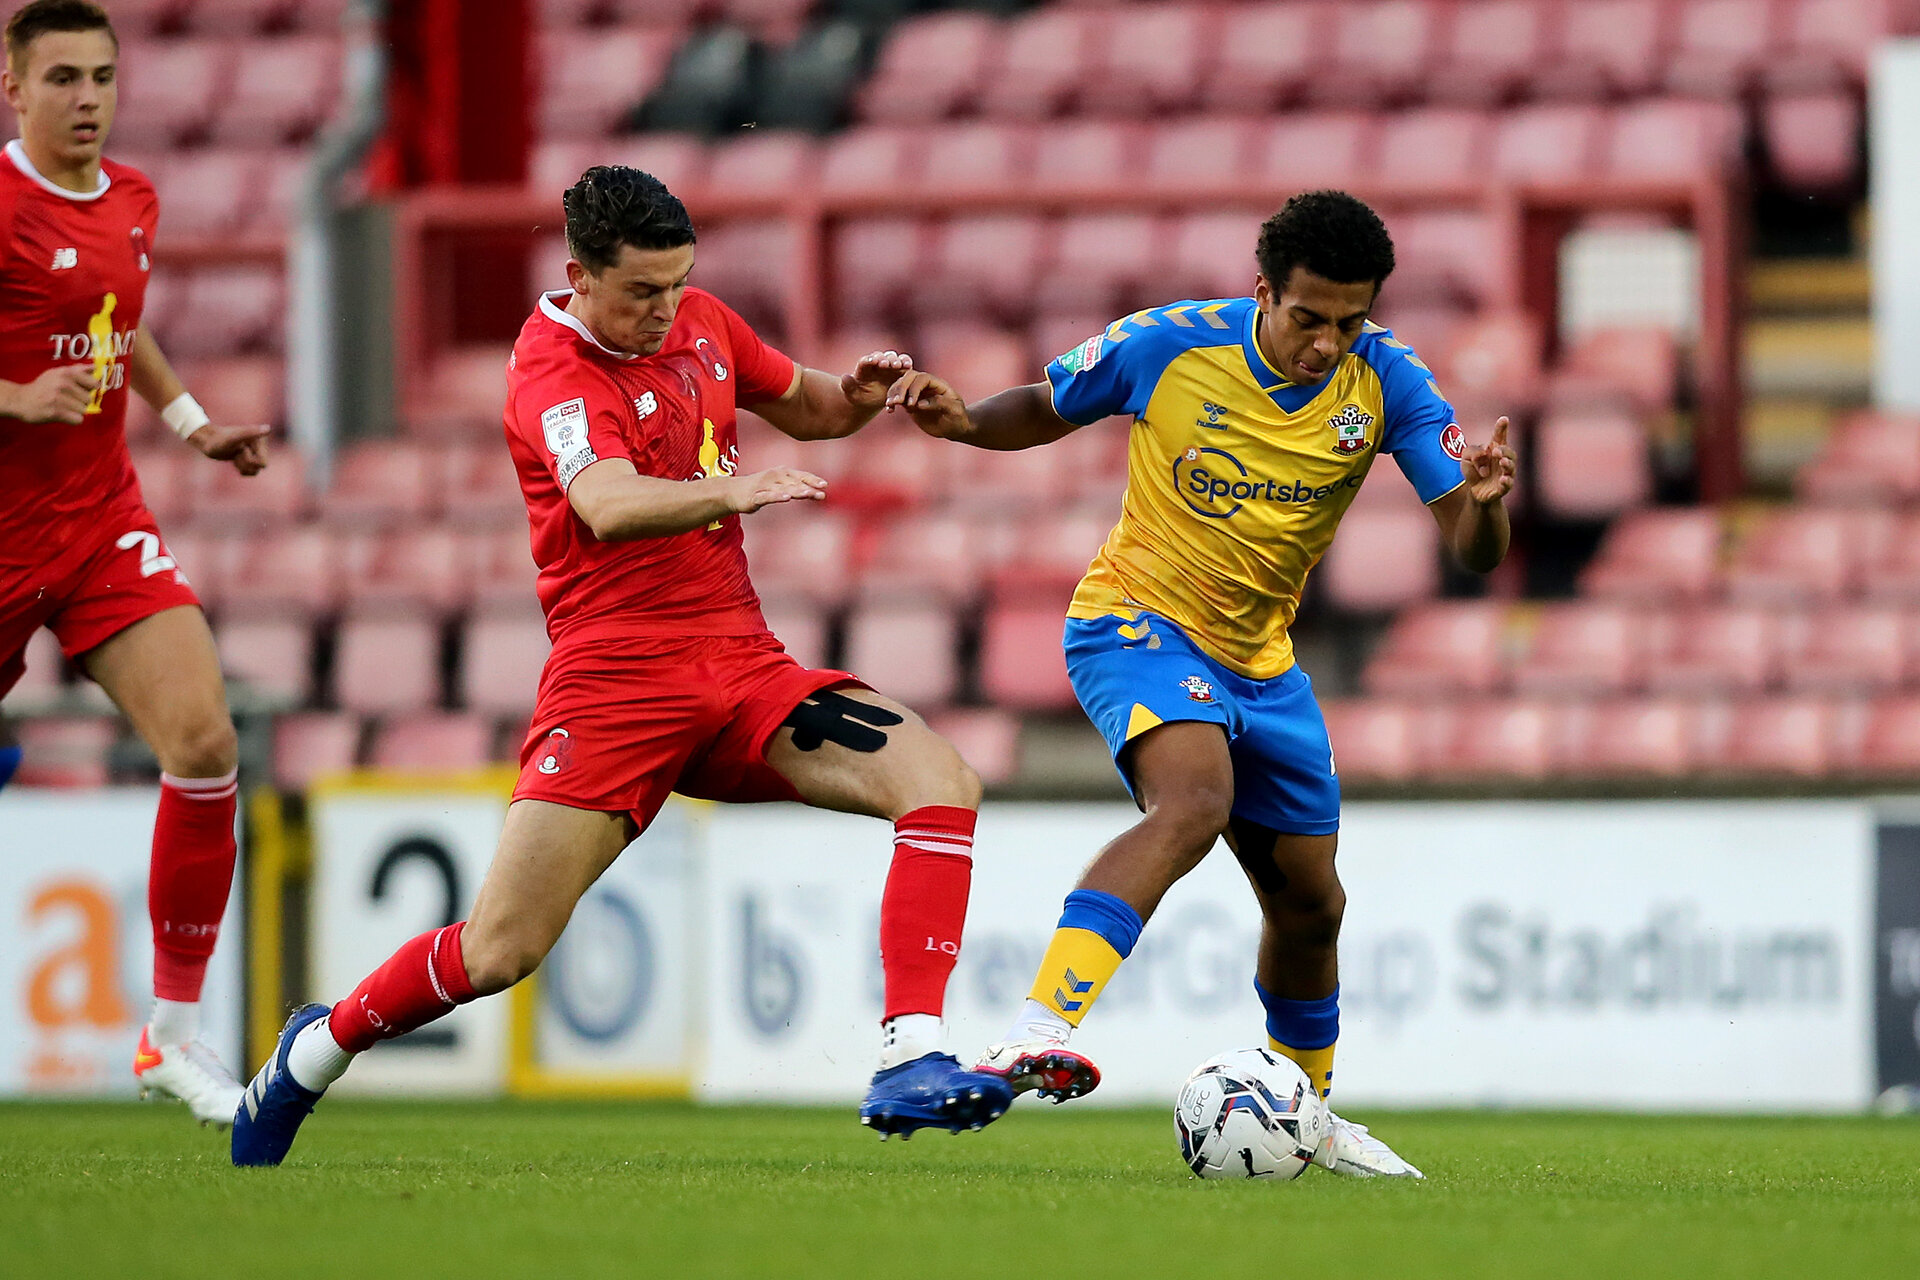 LONDON, ENGLAND - SEPTEMBER 14:  during the Papa John's Trophy match between Leyton Orient and Southampton B Team at Breyer Group Stadium on September 14, 2021 in London, England. (Photo by Isabelle Field/Southampton FC via Getty Images)